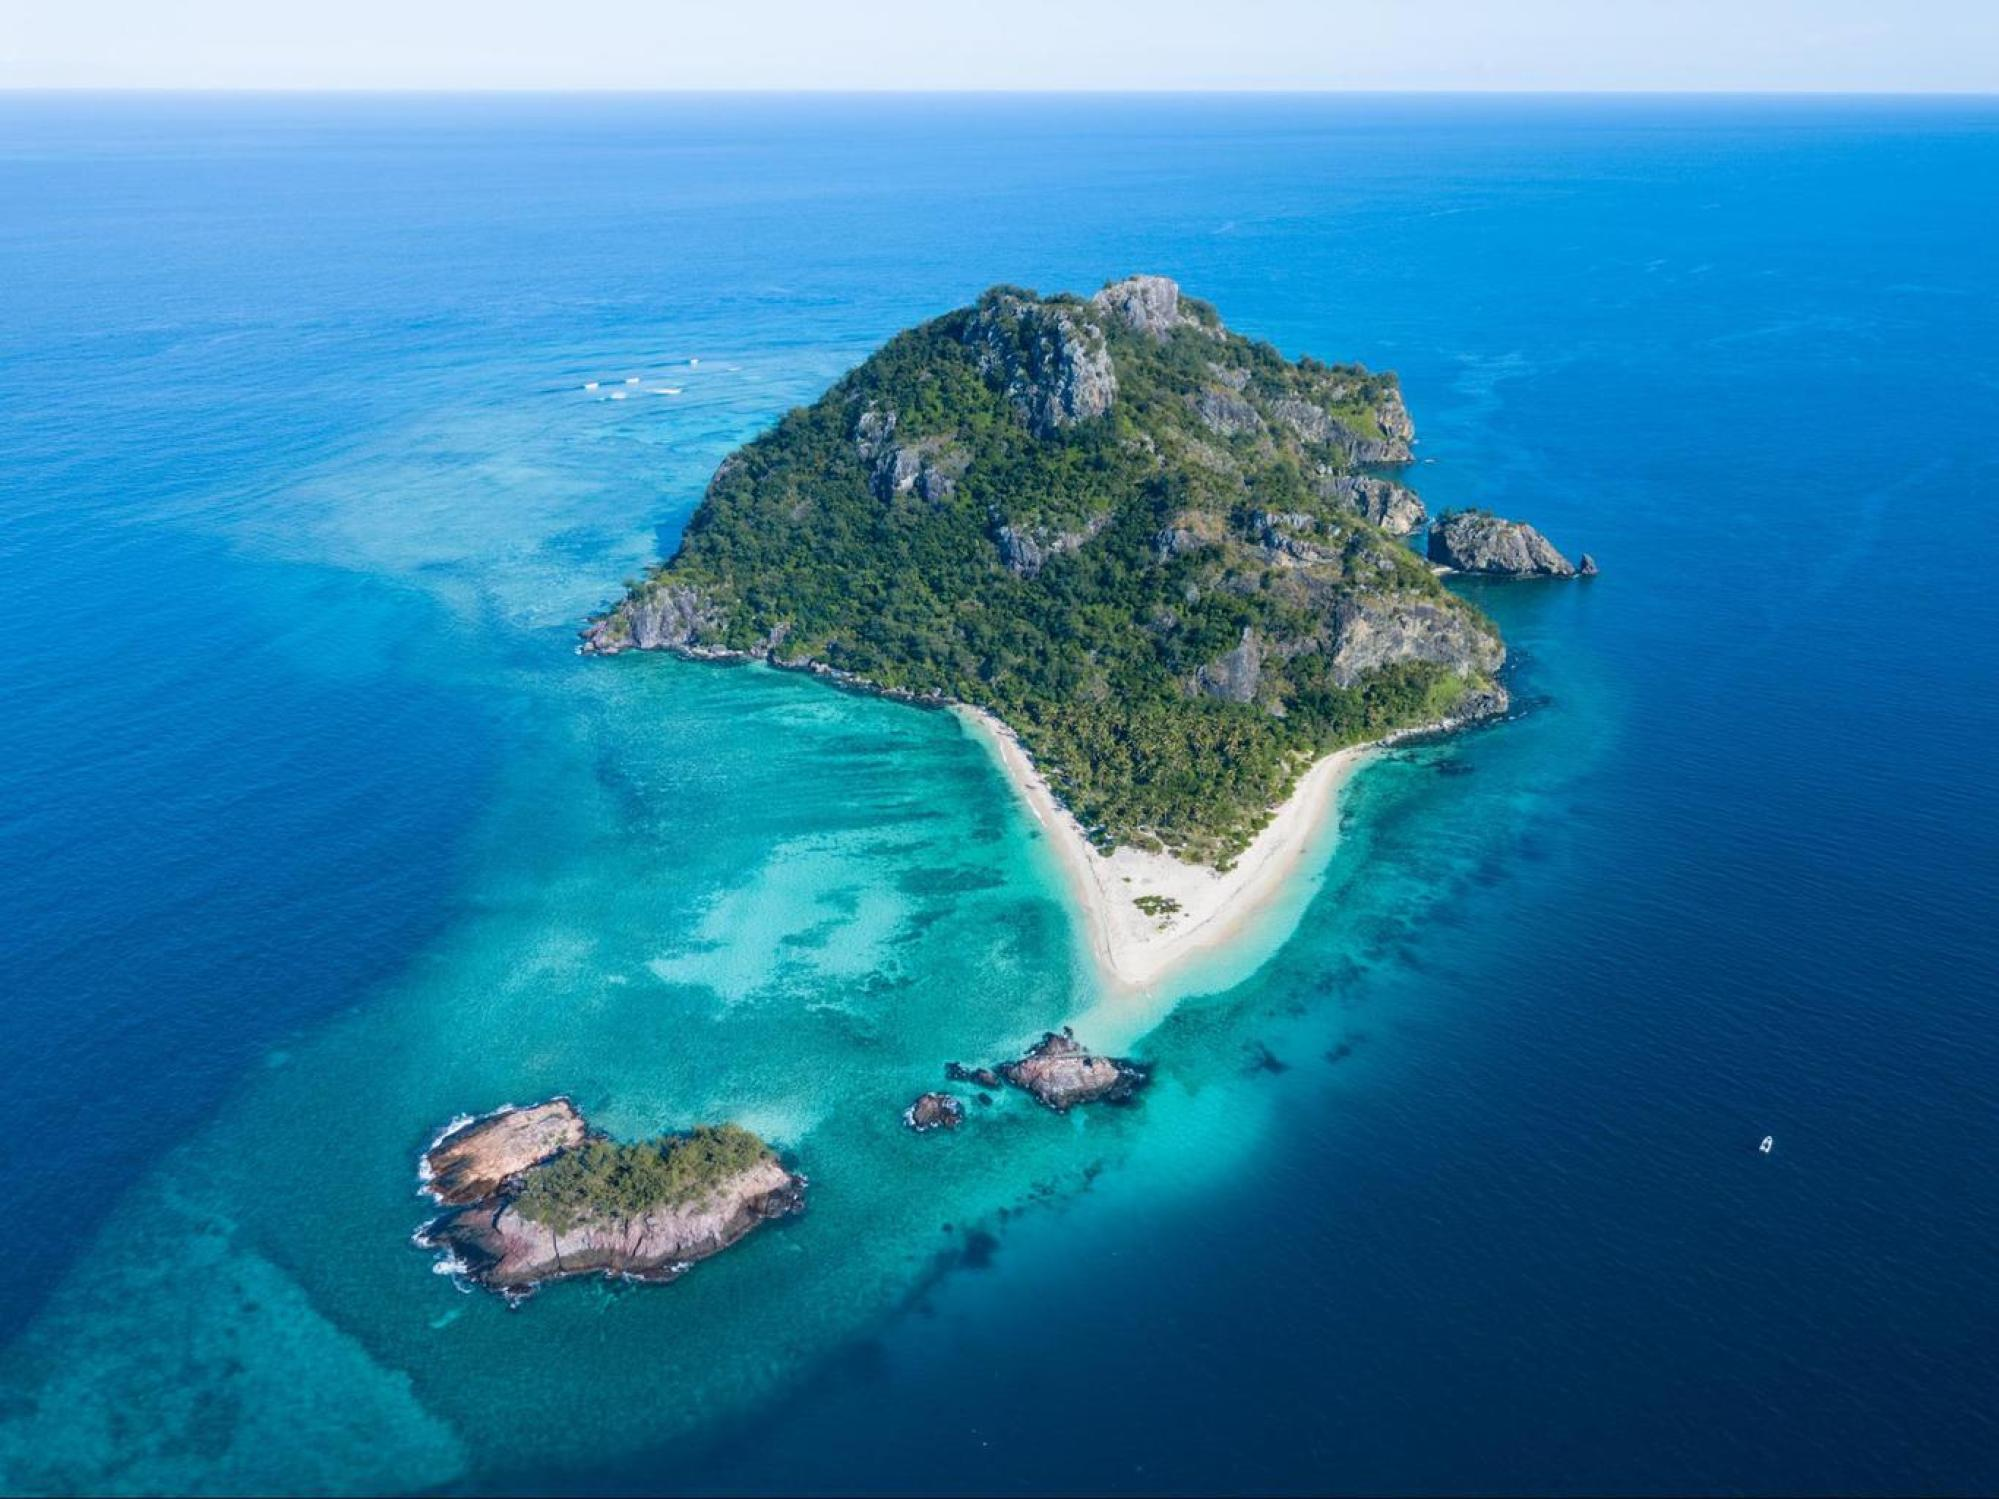 The real Cast Away island from the movie